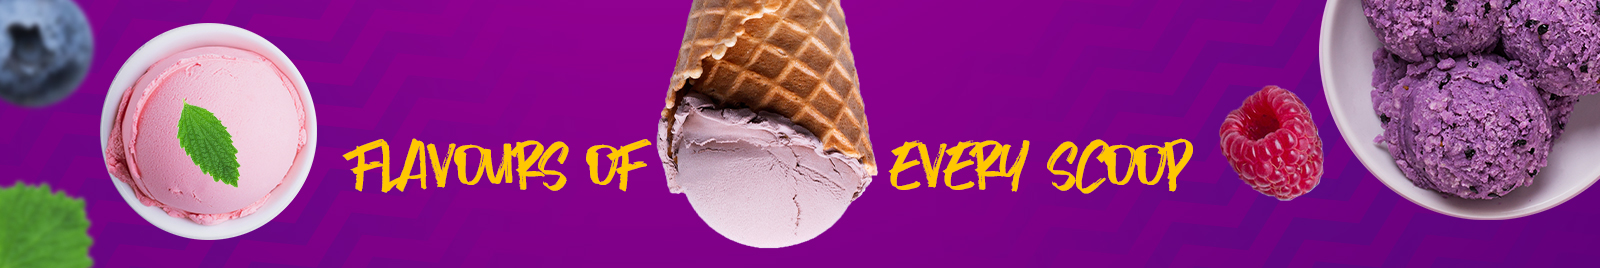 Flavours of every Scoop